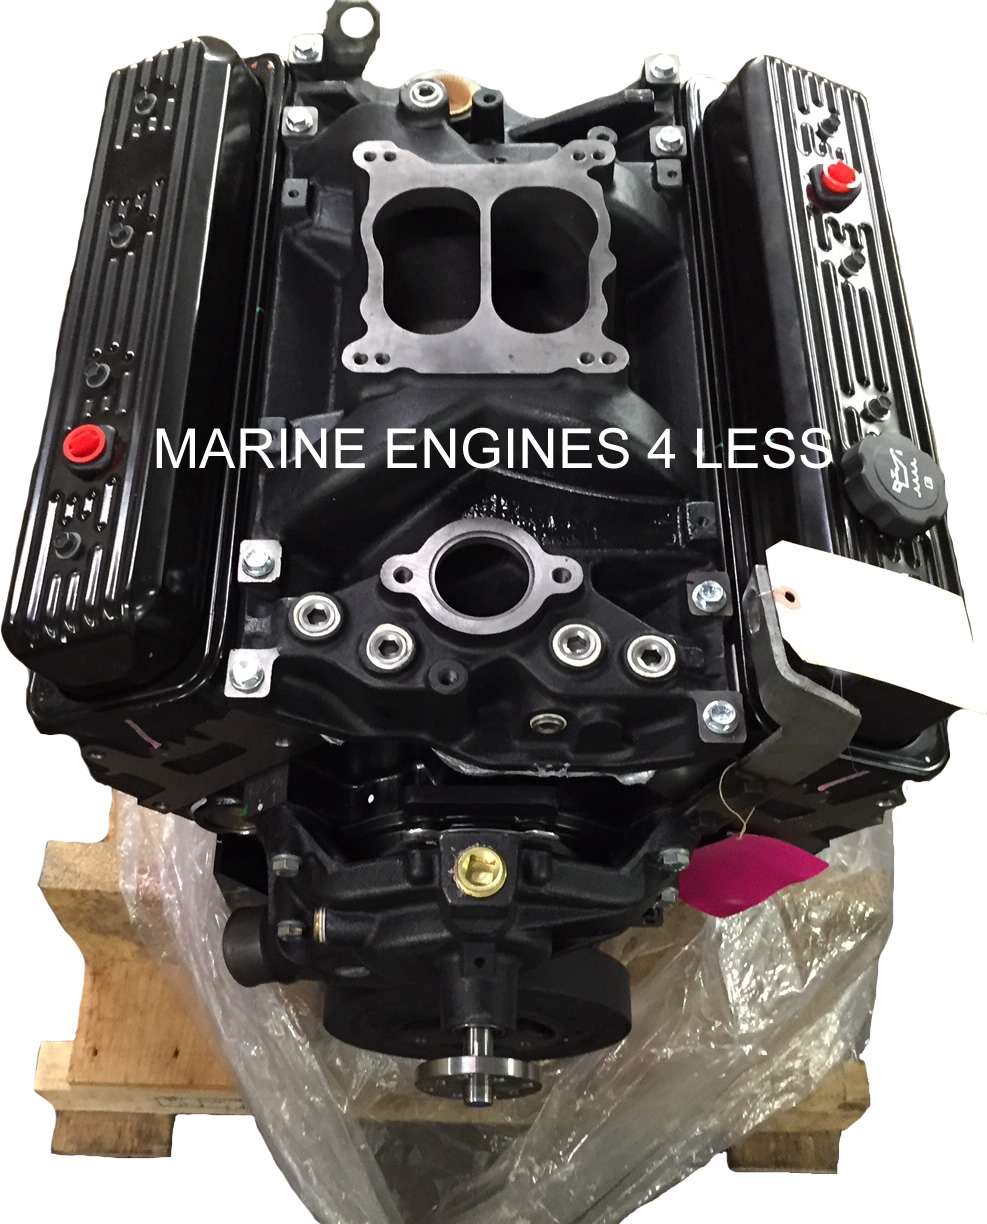 Engine Intake Manifold : Marine engines new extended base